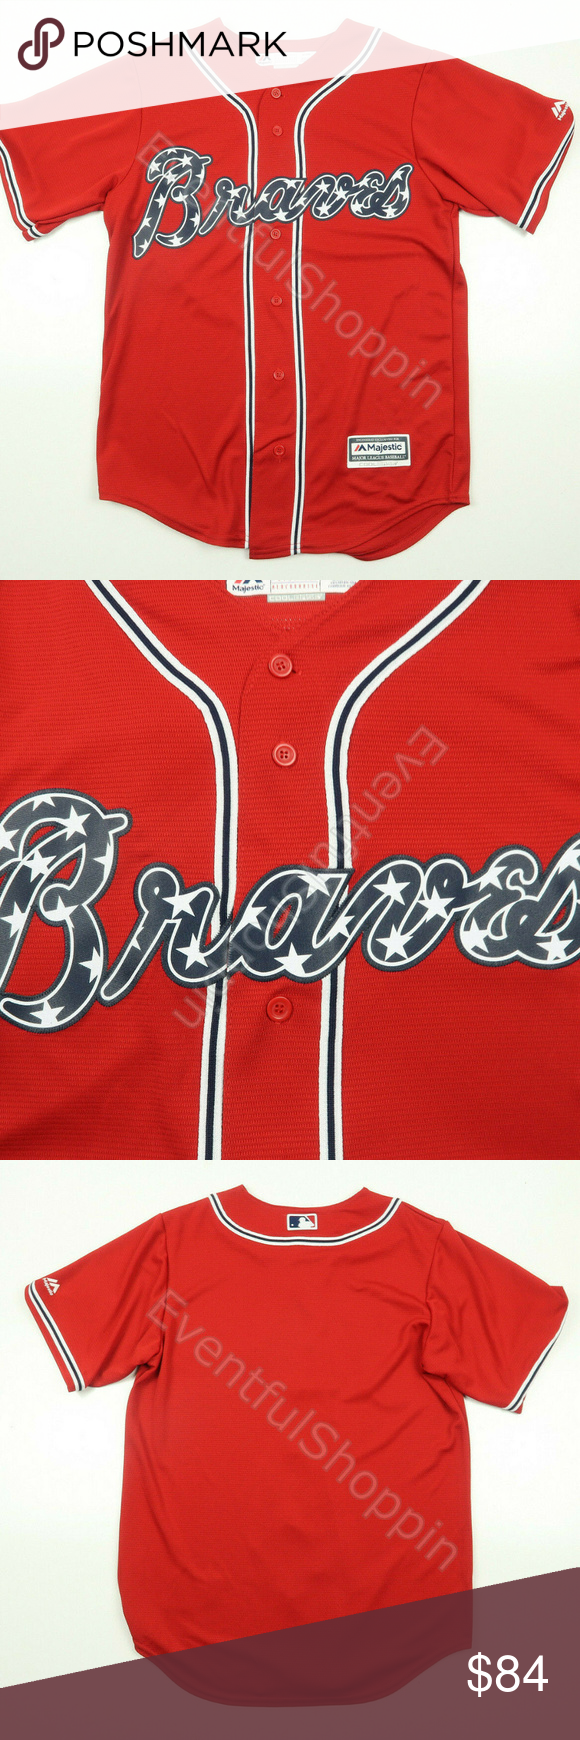 Atlanta Braves Red Stars Stripes Home Jersey Majestic Shirts Clothes Design Fashion